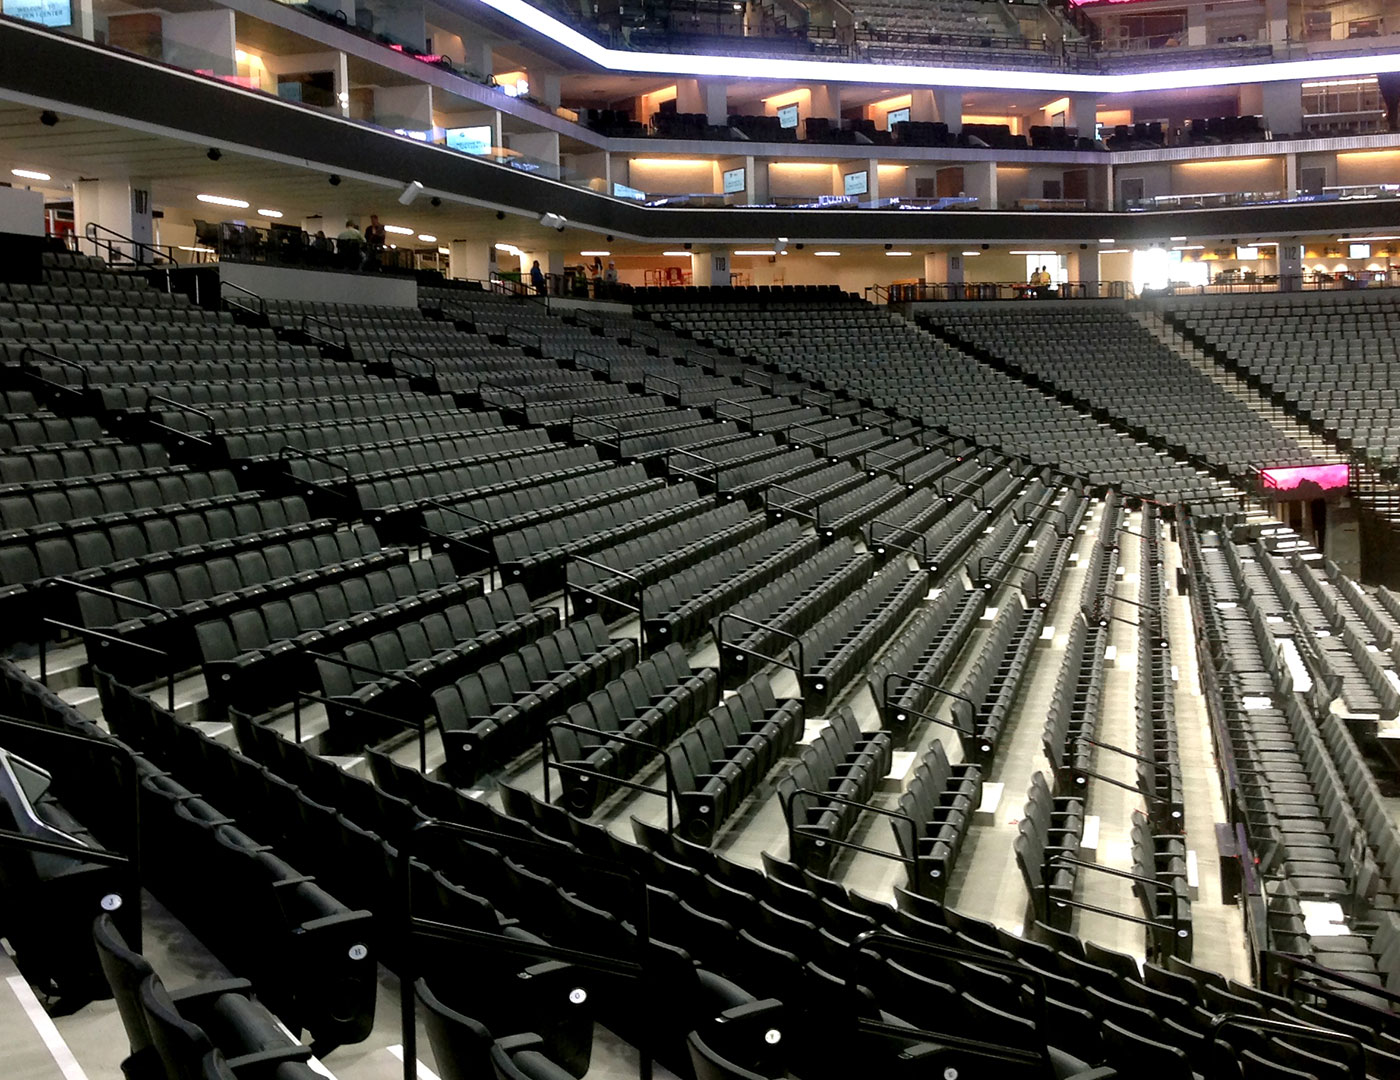 Golden 1 Center aisle railing